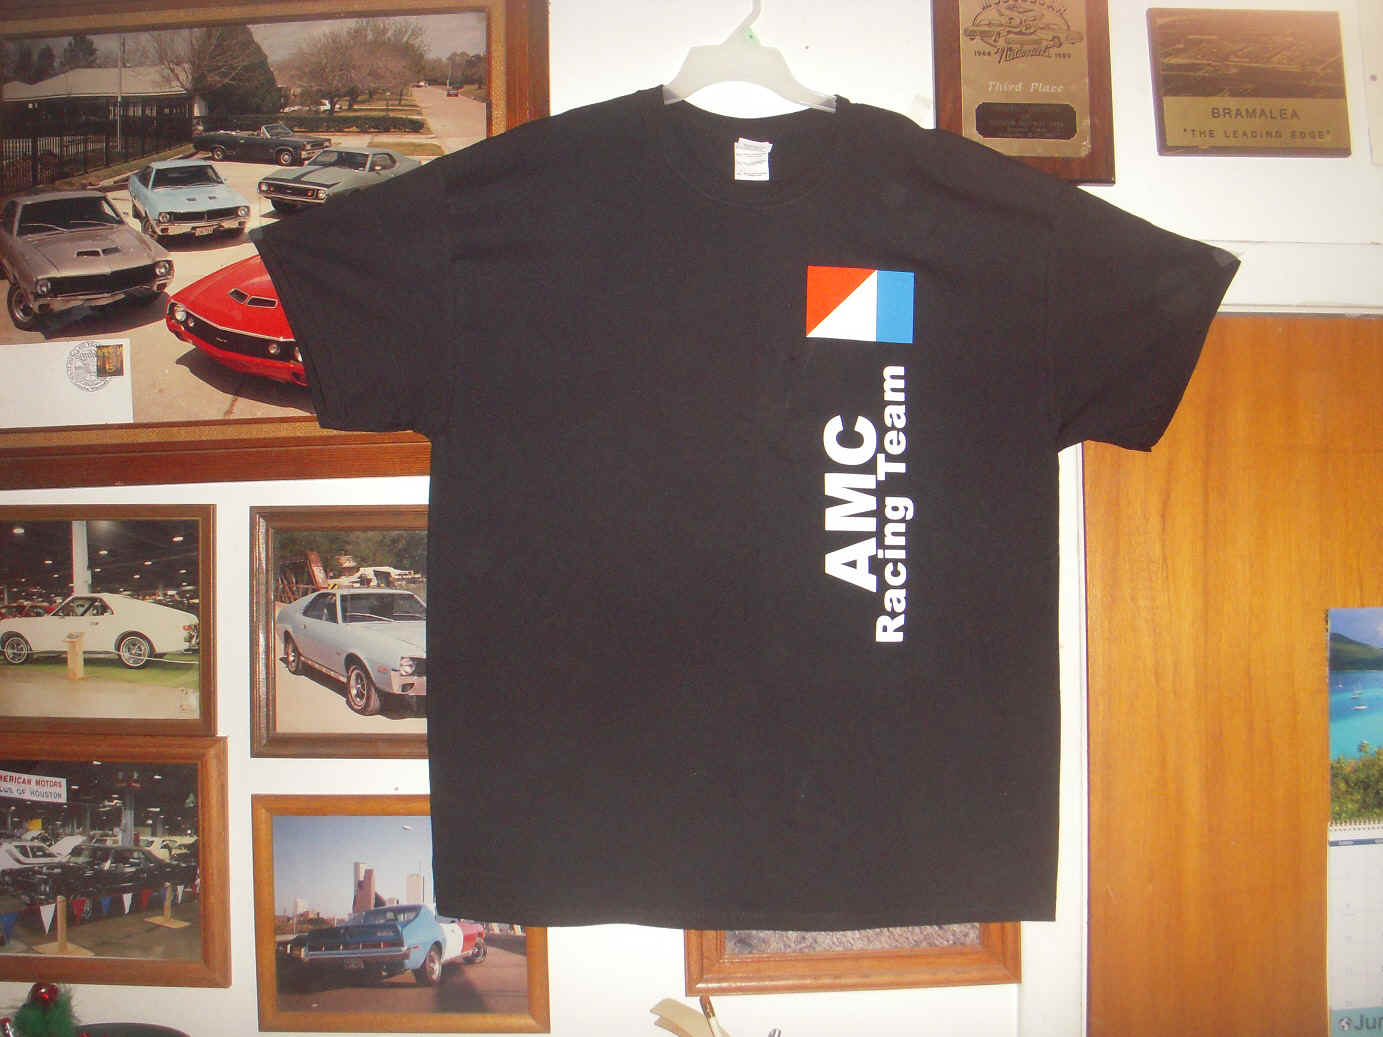 amc-racing-team-shirt.JPG (429971 bytes)